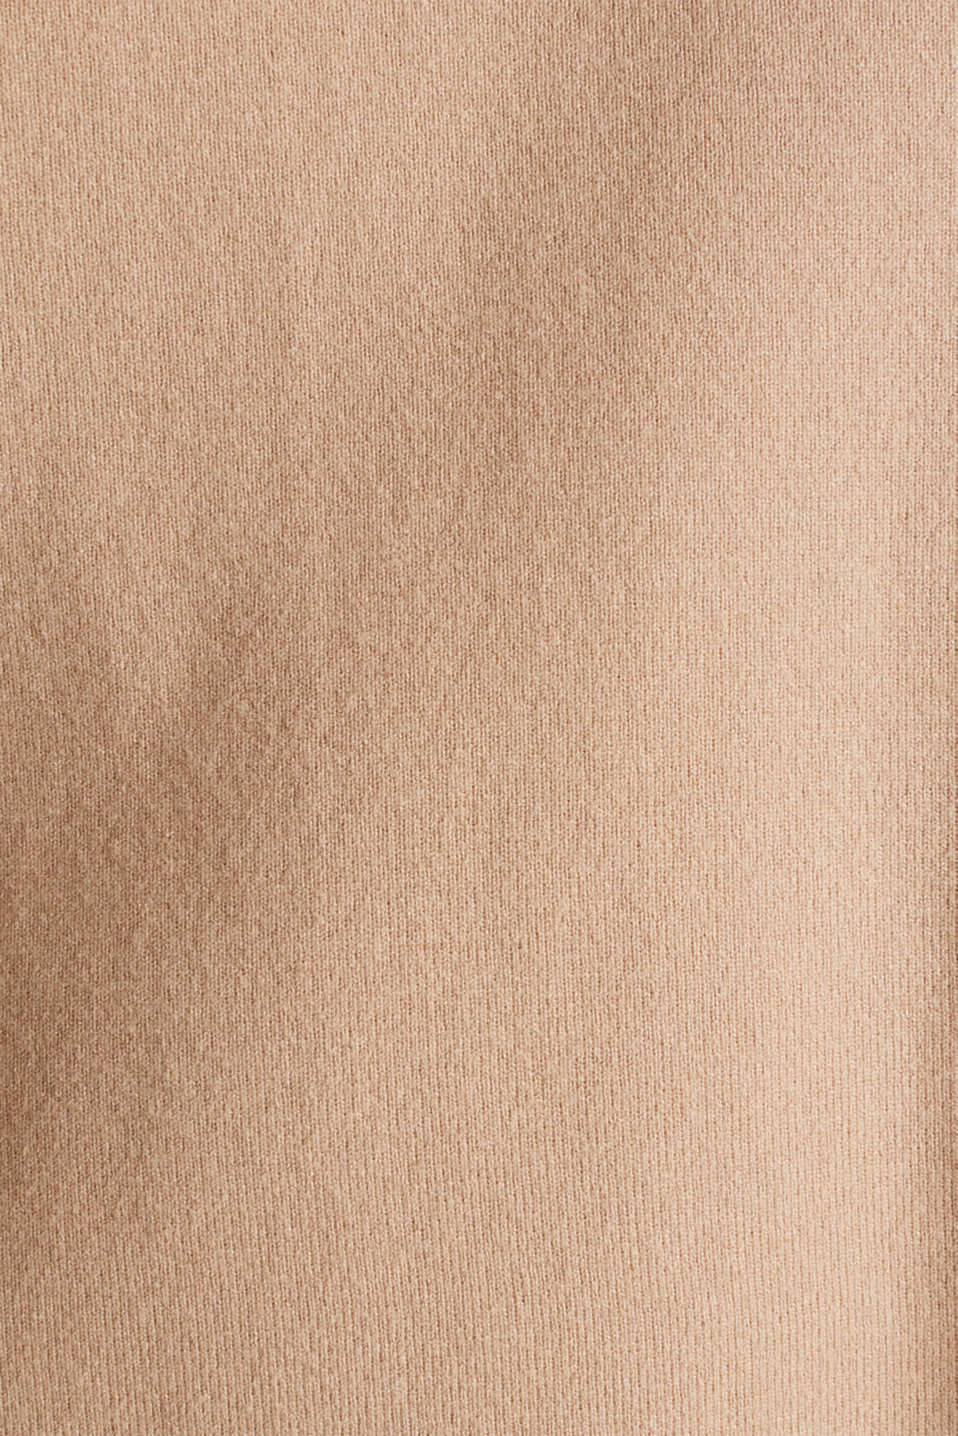 Stretch jumper with a stand-up waistband, LIGHT BEIGE, detail image number 4